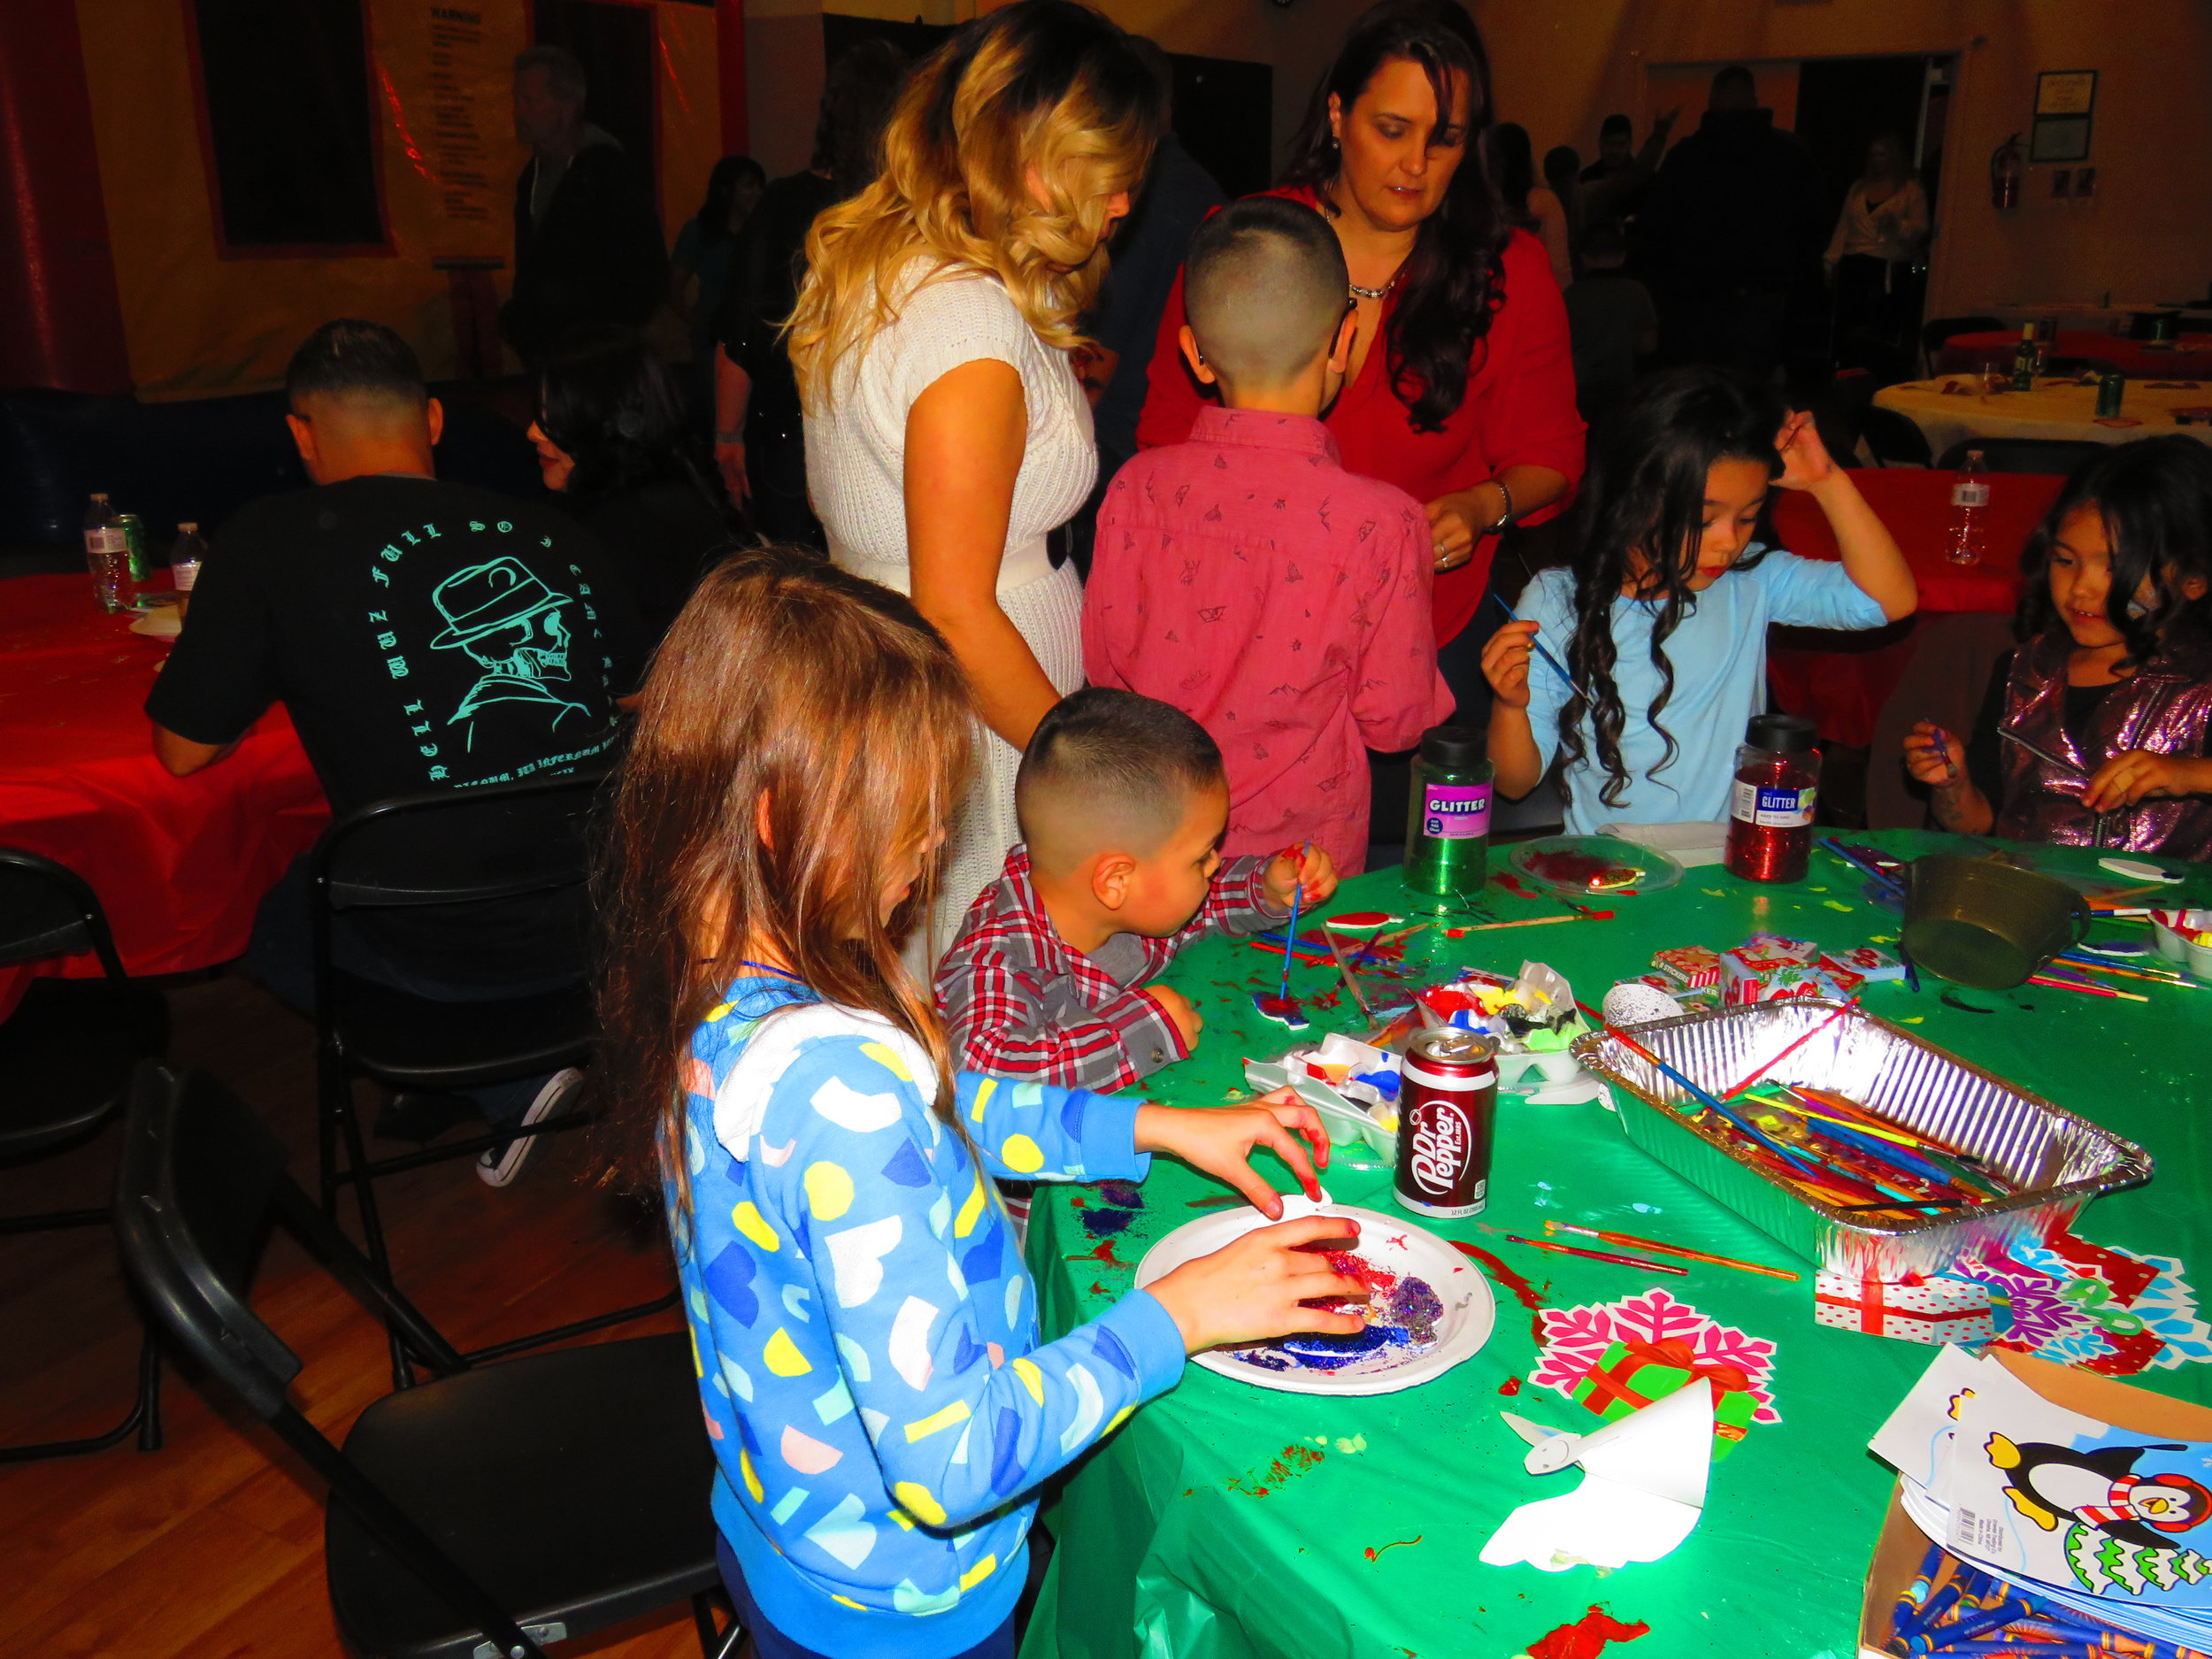 KIDS AT CRAFT TABLE 2.JPG